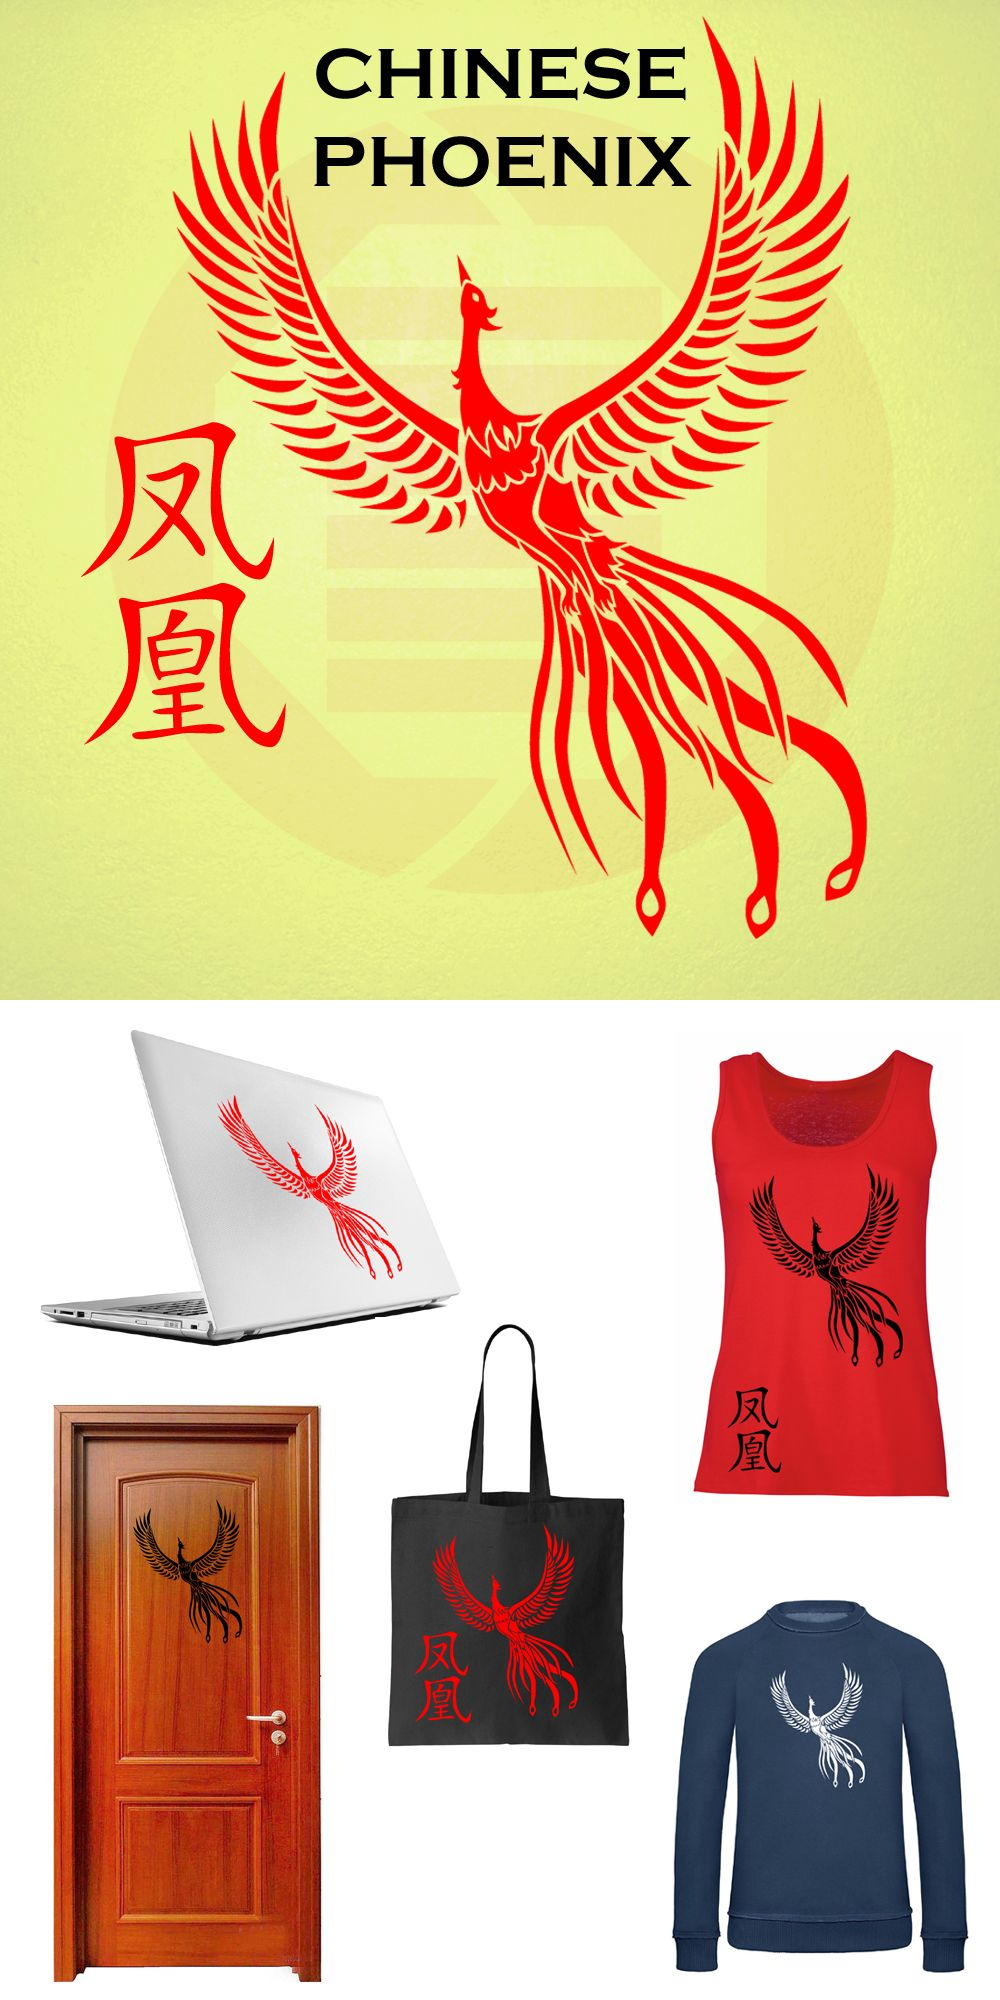 Chinese Phoenix Bird Design For Home Decorations, Clothes, Object #Etsy